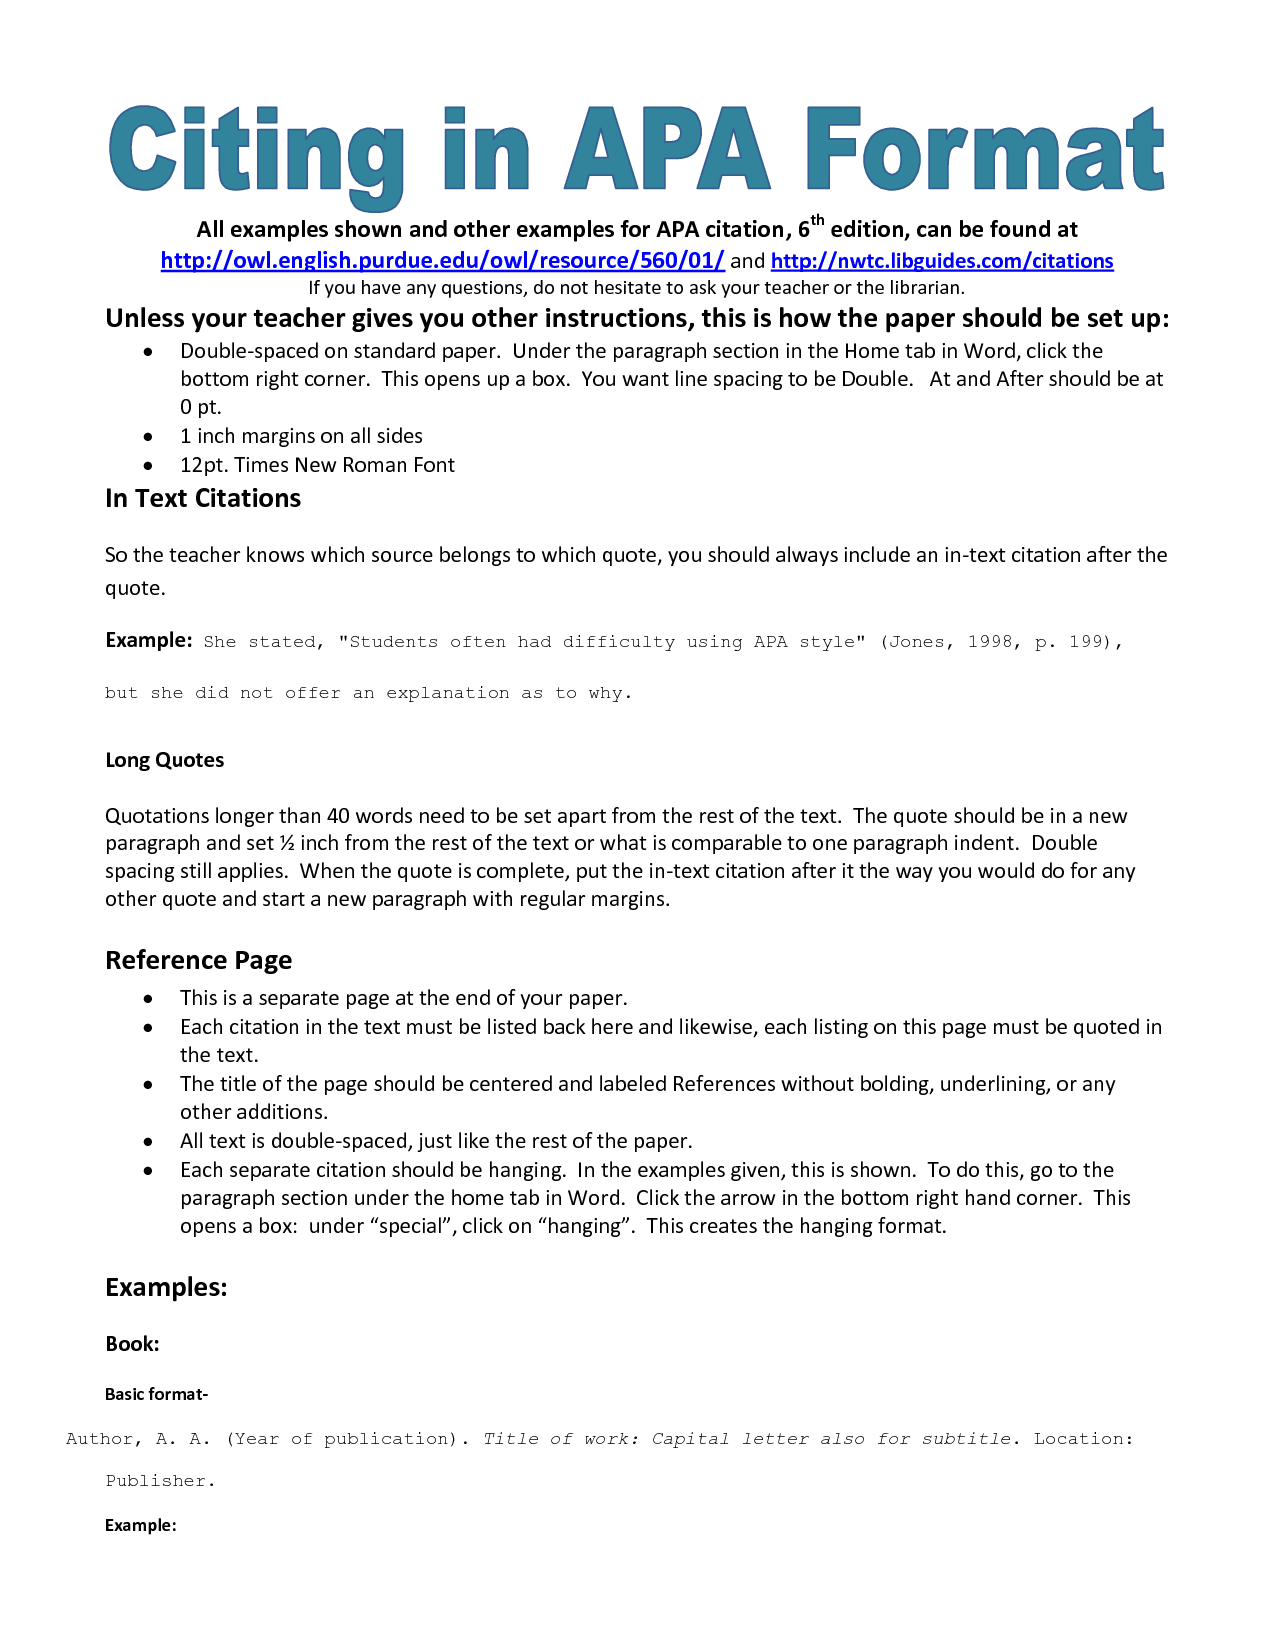 Search Essays In English Apa Style Writing Apa Writing Format Apa Style Essay Apa Essay Format Assignment Help Sydney also Science Fair Essay Pin By Karen Sue Davis On Wgu  Apa Style Apa Essay Apa Essay Format Federalism Essay Paper